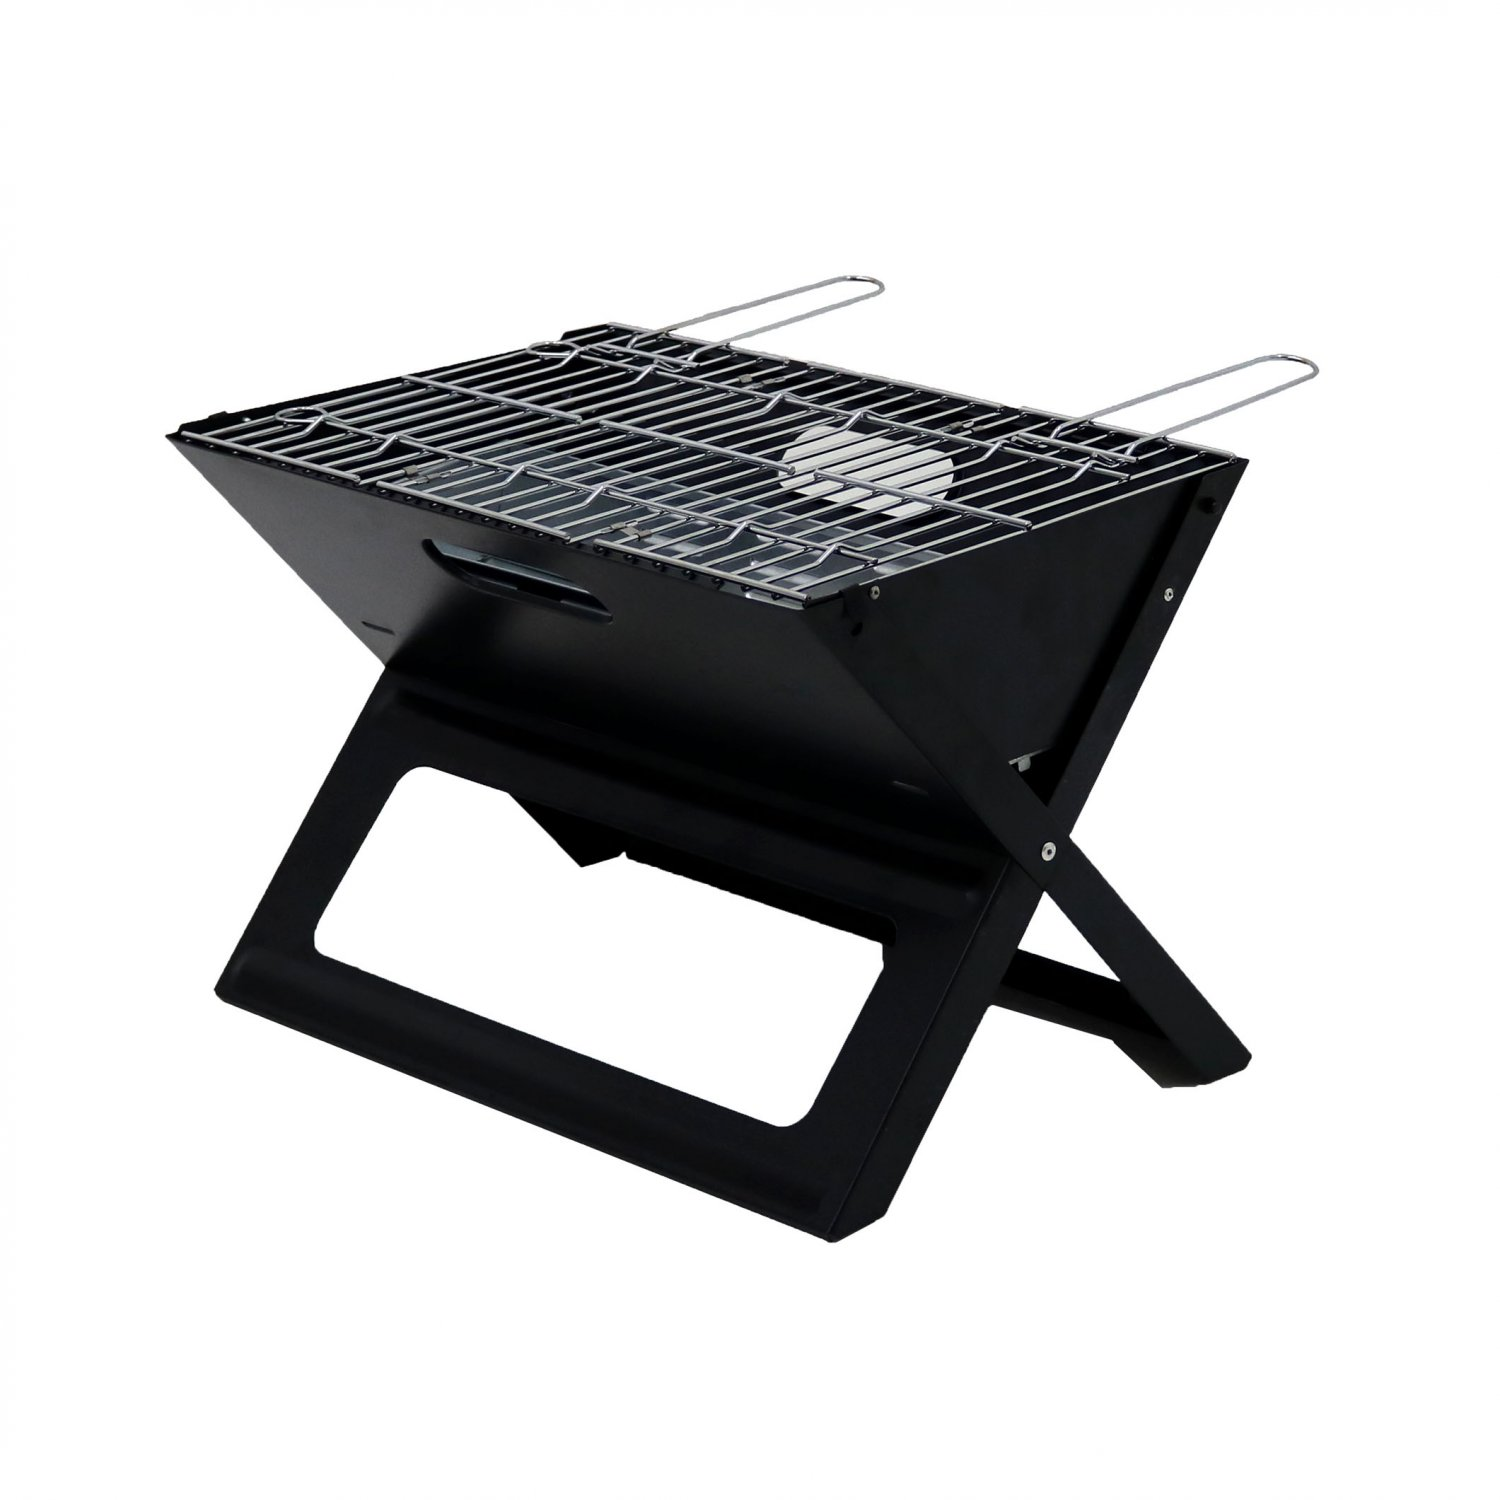 BBQ Barbecue Grill Folding Light Portable Stainless Steel Picnic Camping Outdoor